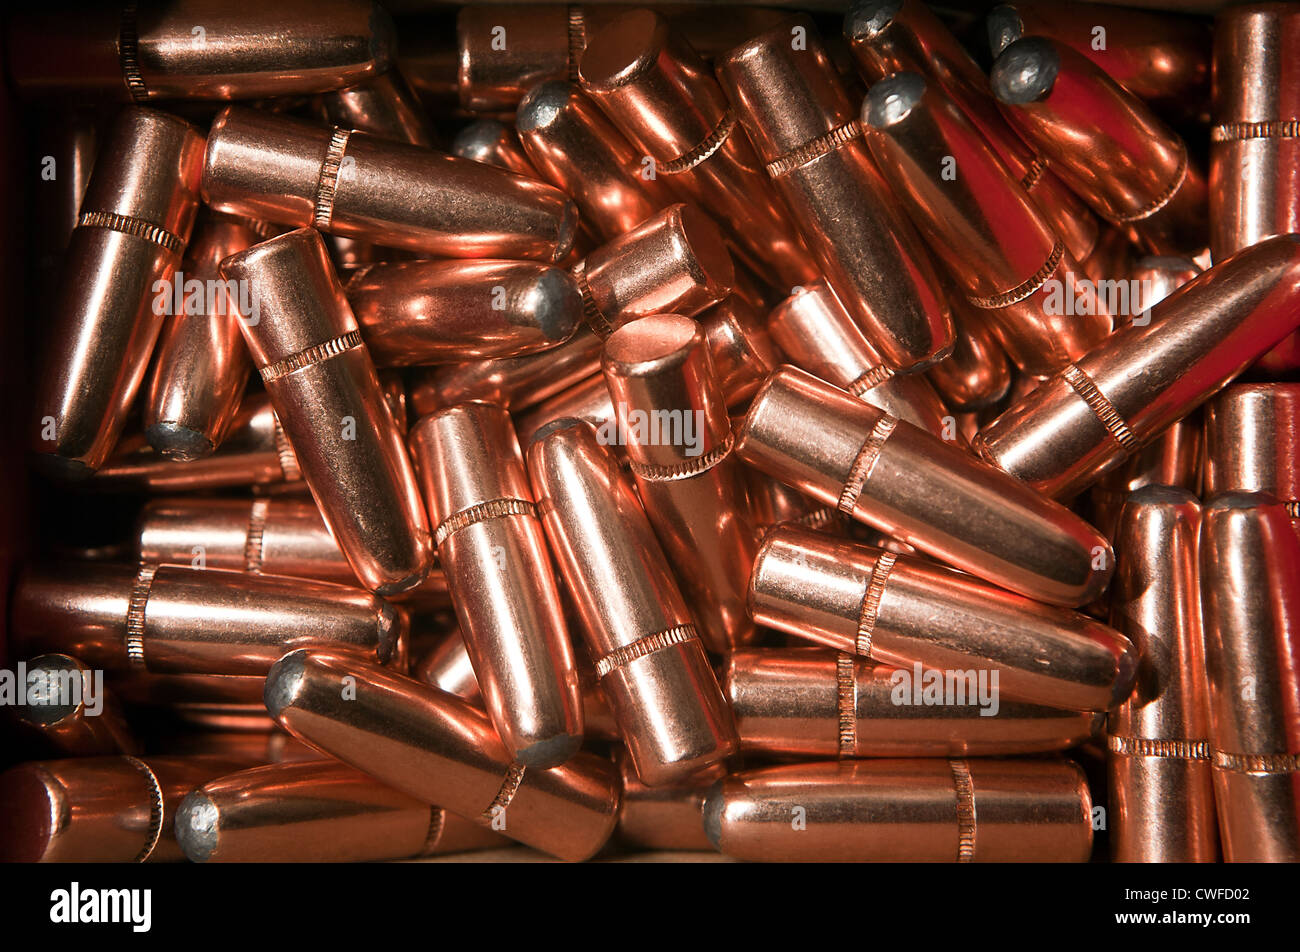 A pile of hunting soft point expanding bullets of .30-06 Springfield caliber - Stock Image